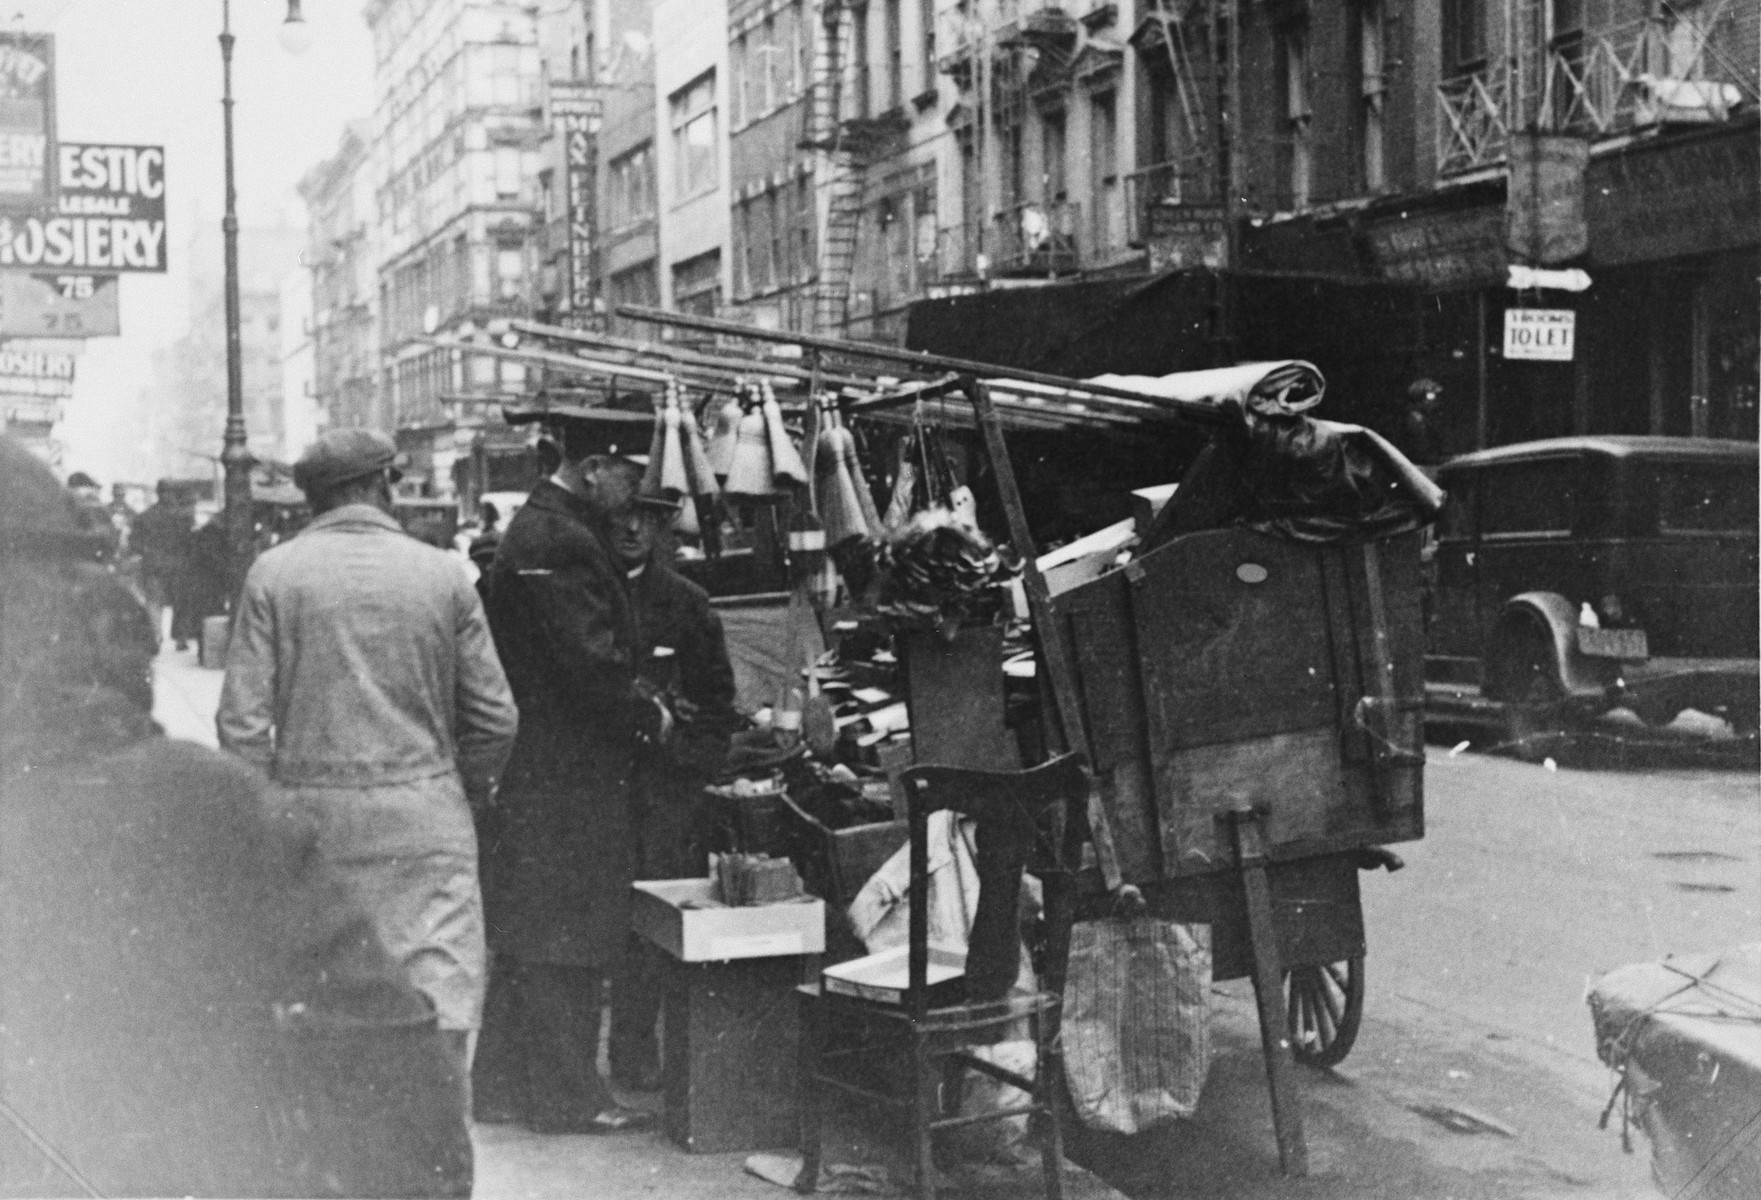 A street vendor sells his wares on a street in a Jewish neighborhood of New York City.  This photograph was taken by a German-Jew who was visiting America to determine whether or not to immigrate.